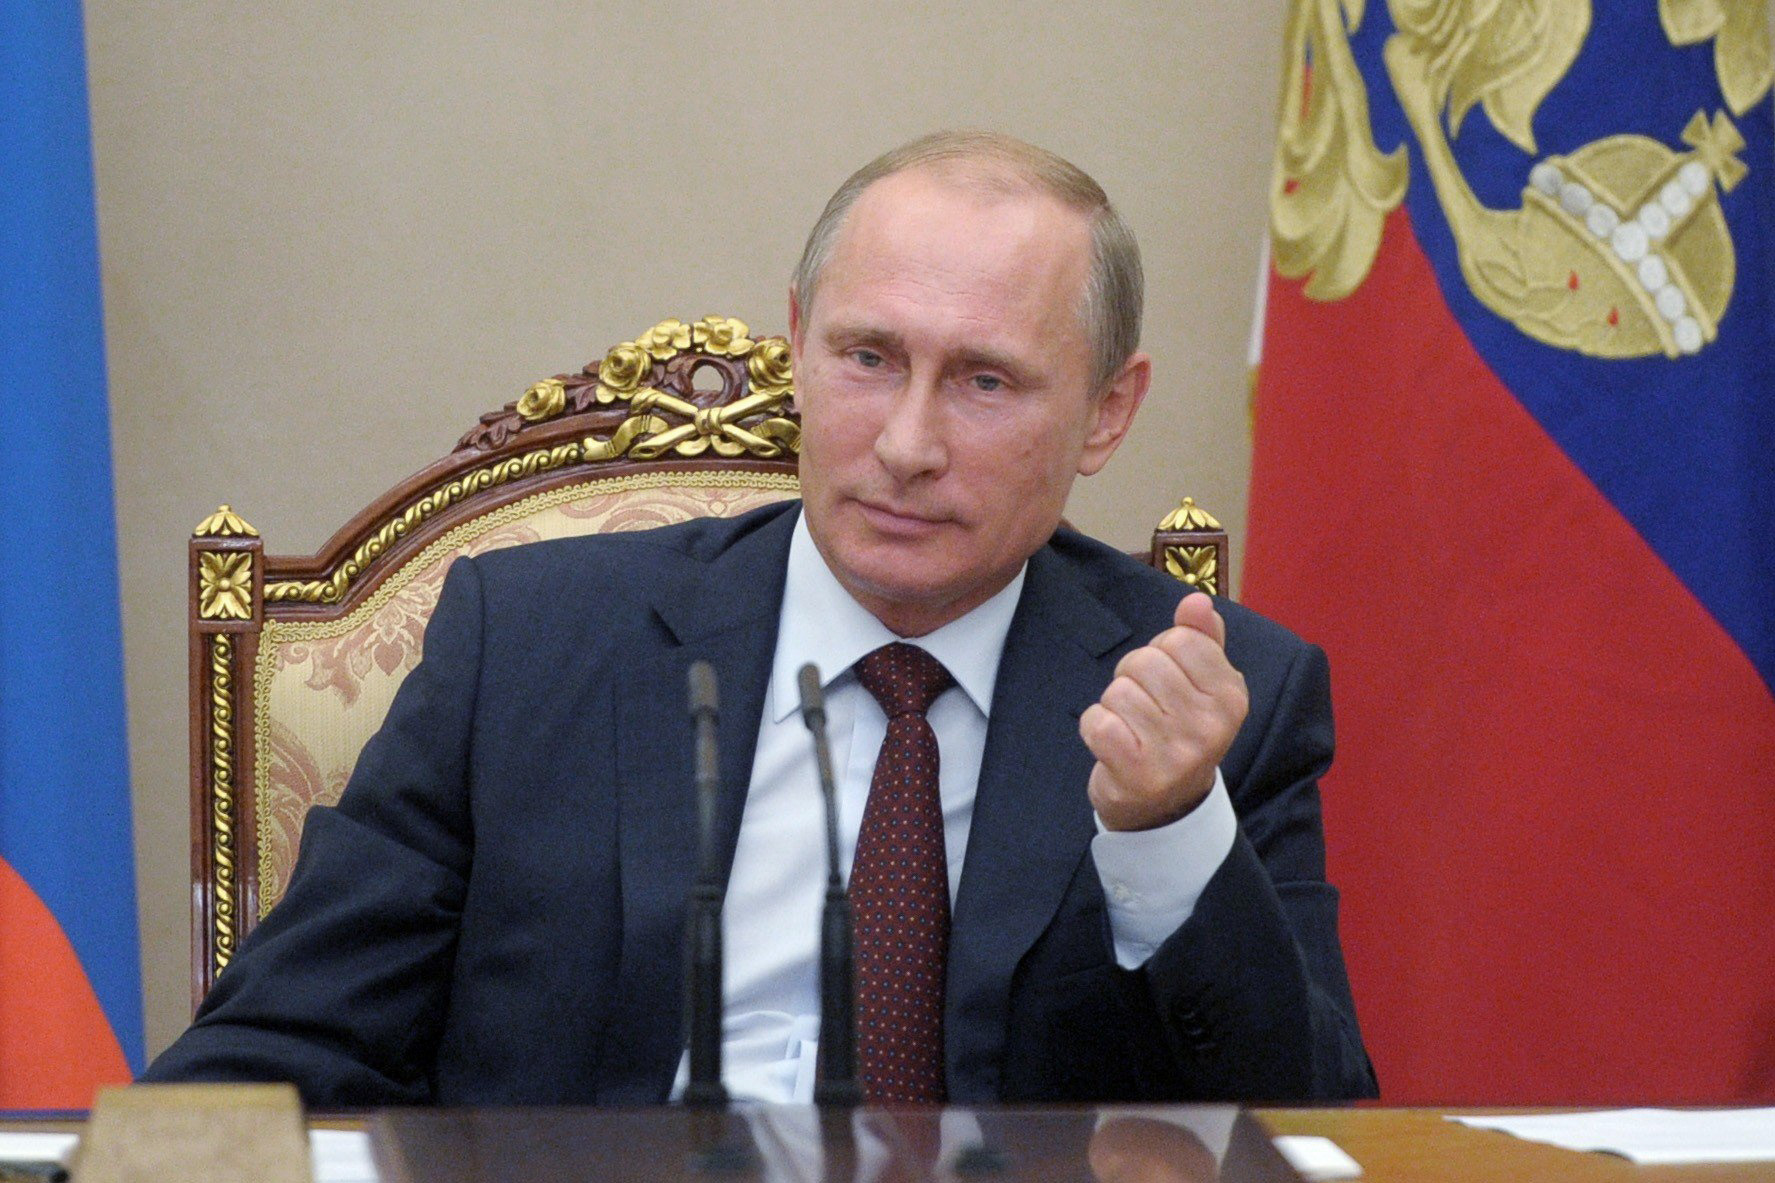 President Vladimir Putin during a government meeting in Moscow, Sept. 11, 2014.